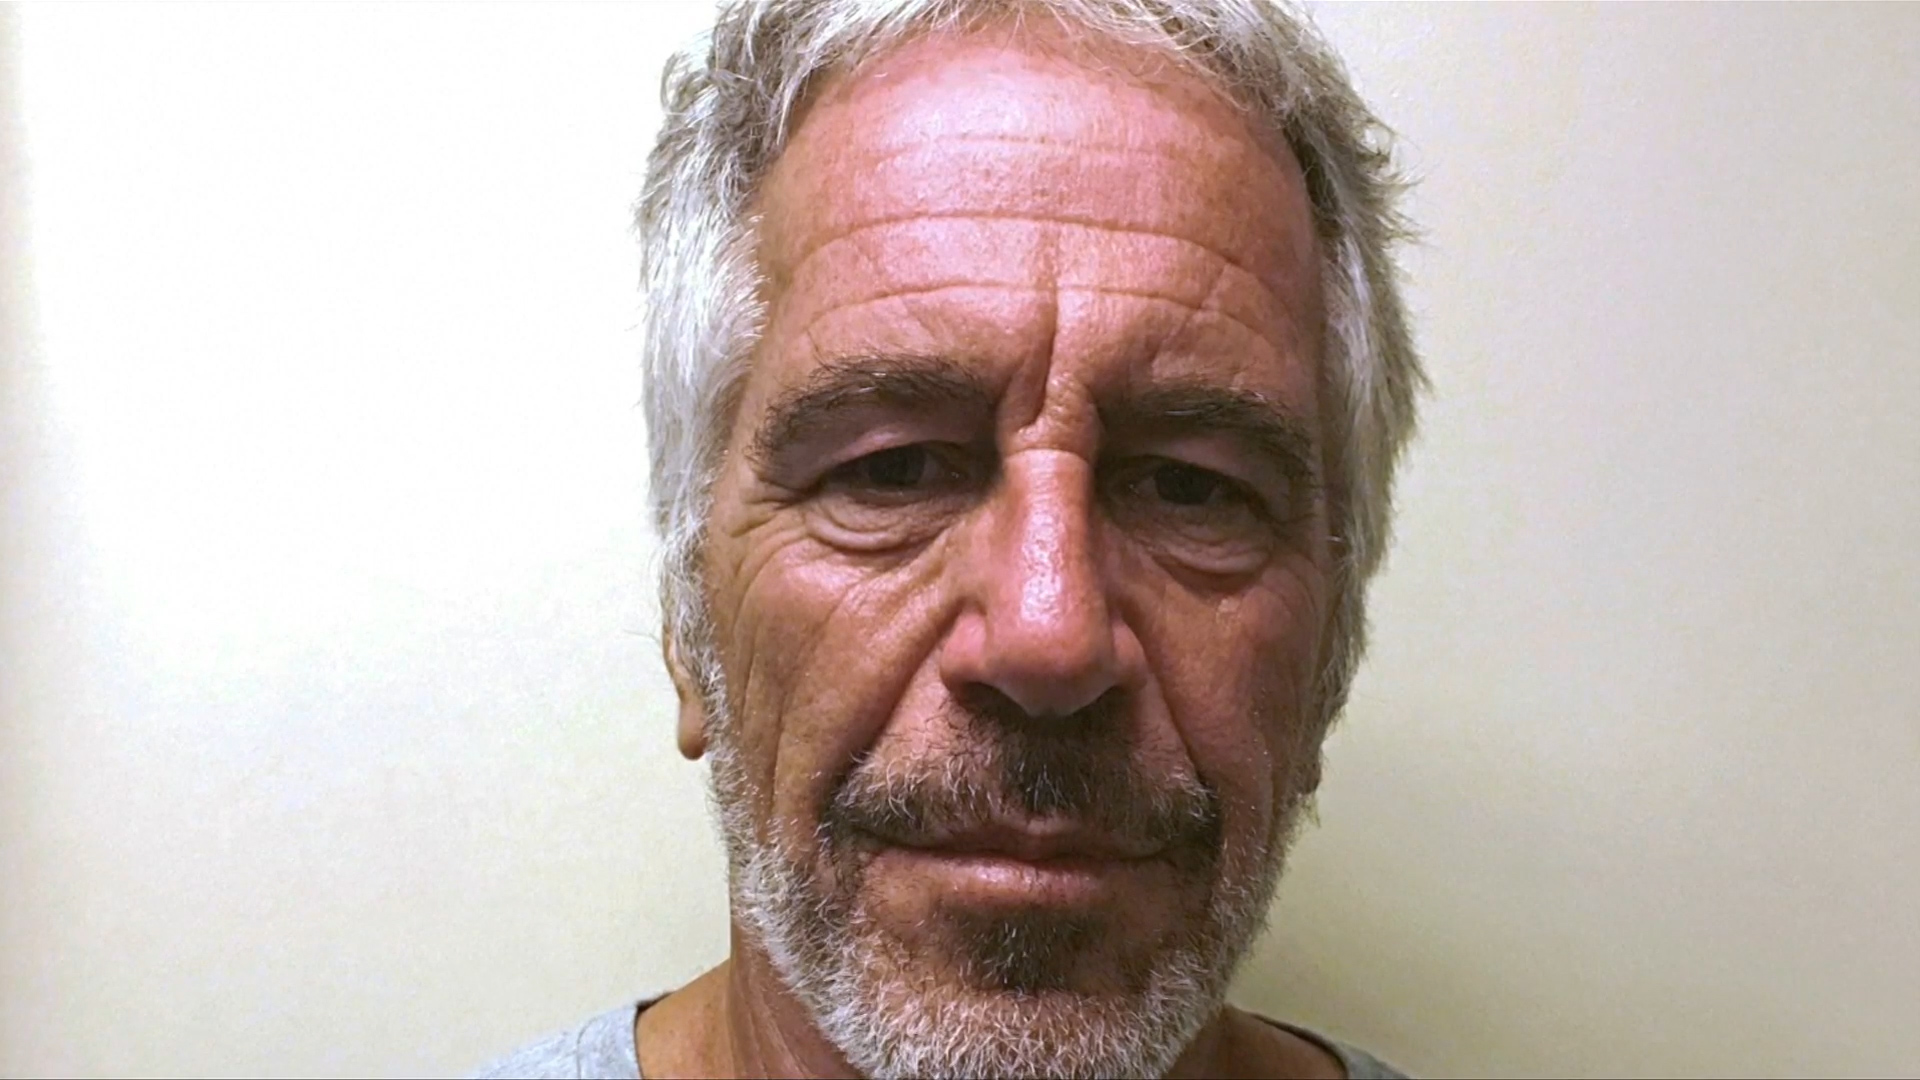 Jeffrey Epstein: Financier 'found dead in cell' in NY